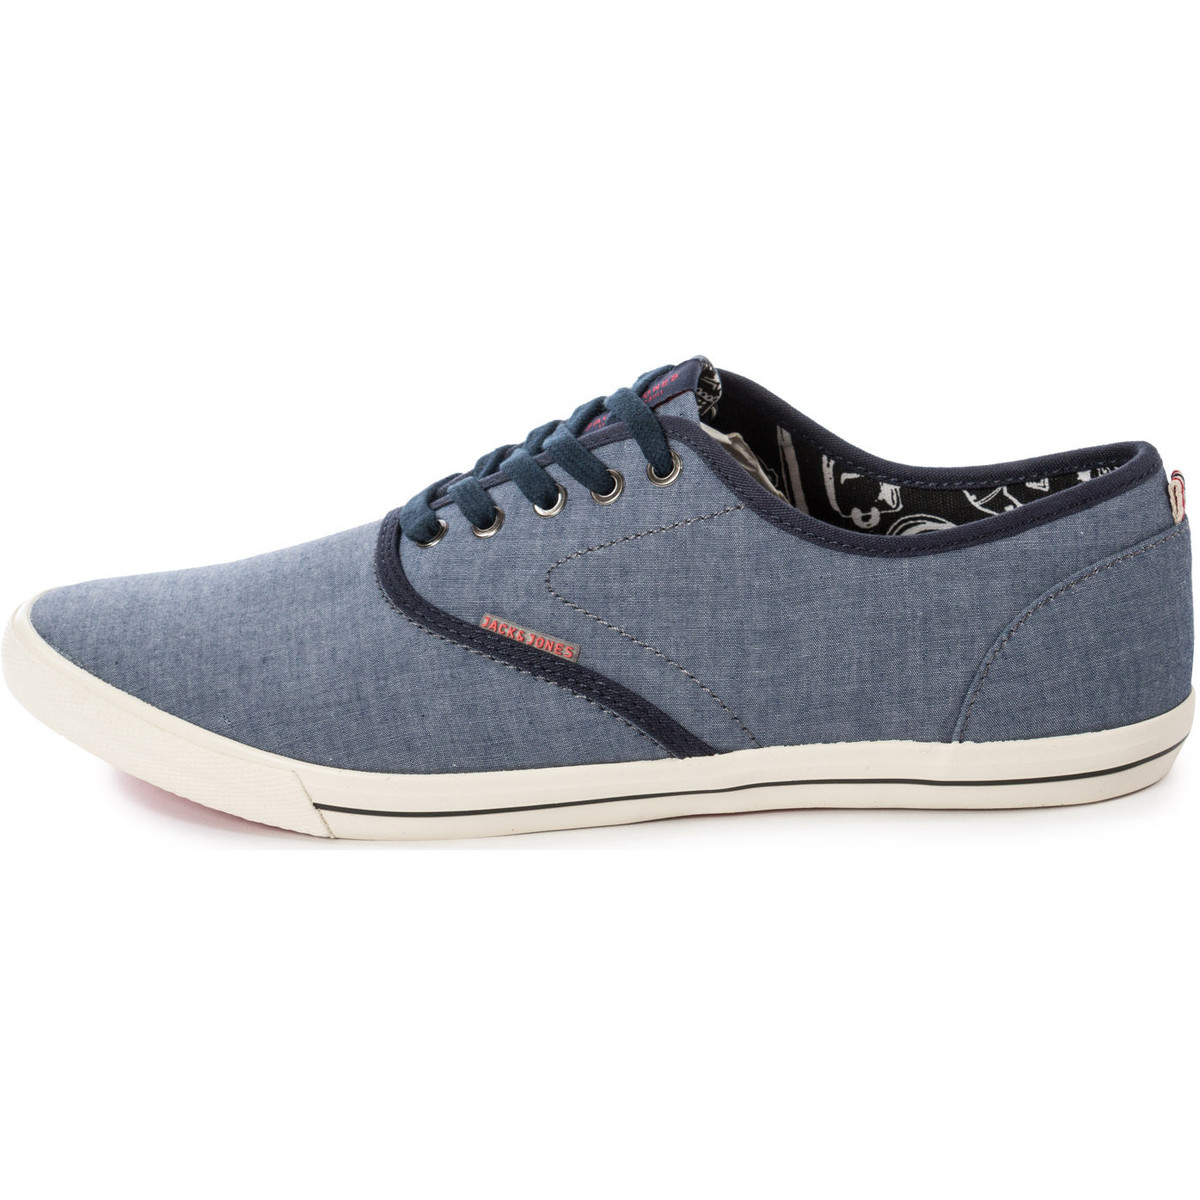 Jack & Jones Spider Bleu